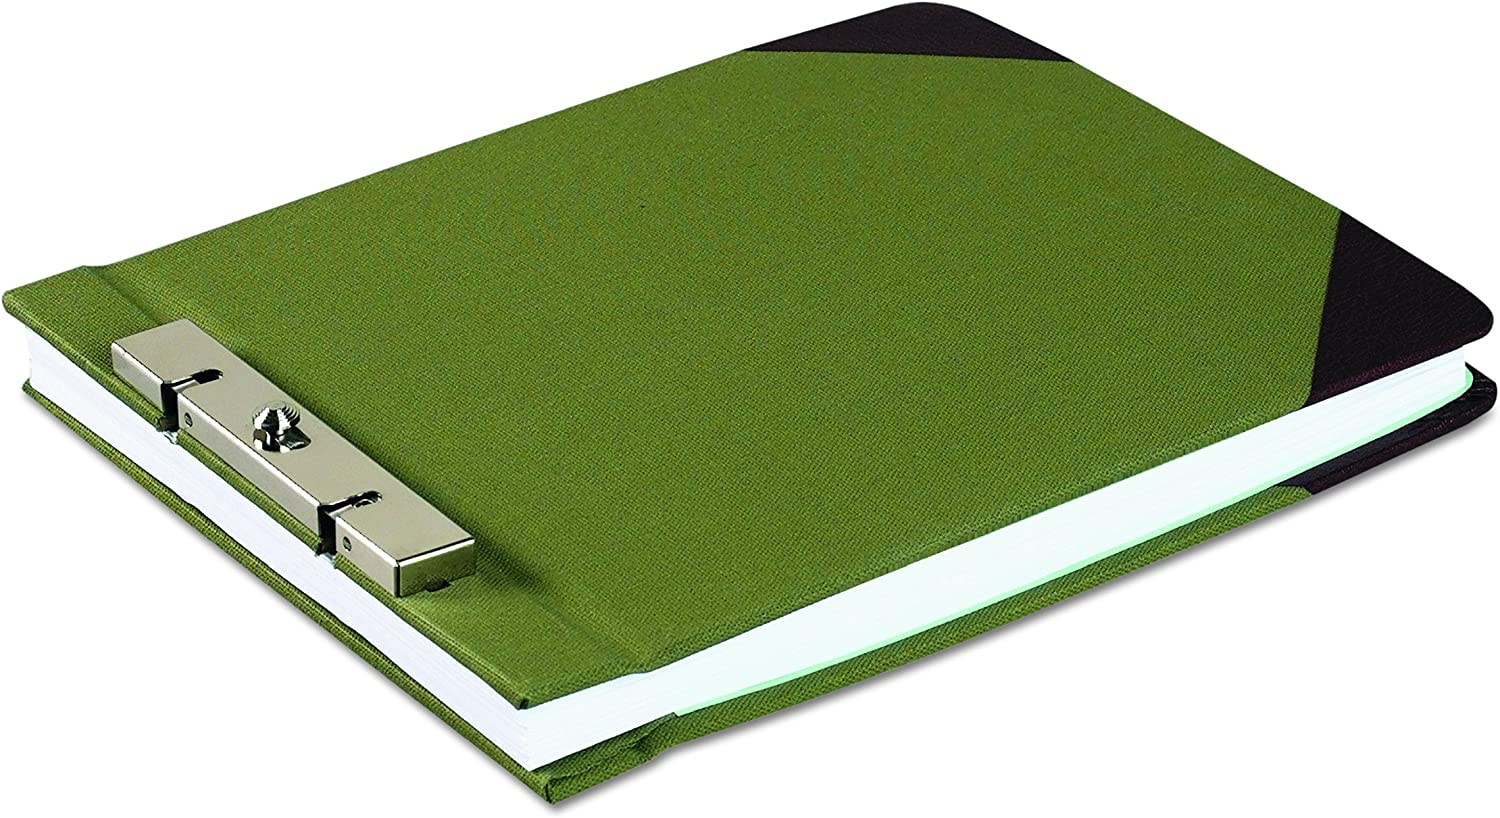 "Wilson Jones Canvas Sectional StoragePost Binder For 8-1/2 X 11 Sheets, 2-3/4"" Post Spacing, Green Canvas, W278-26A"